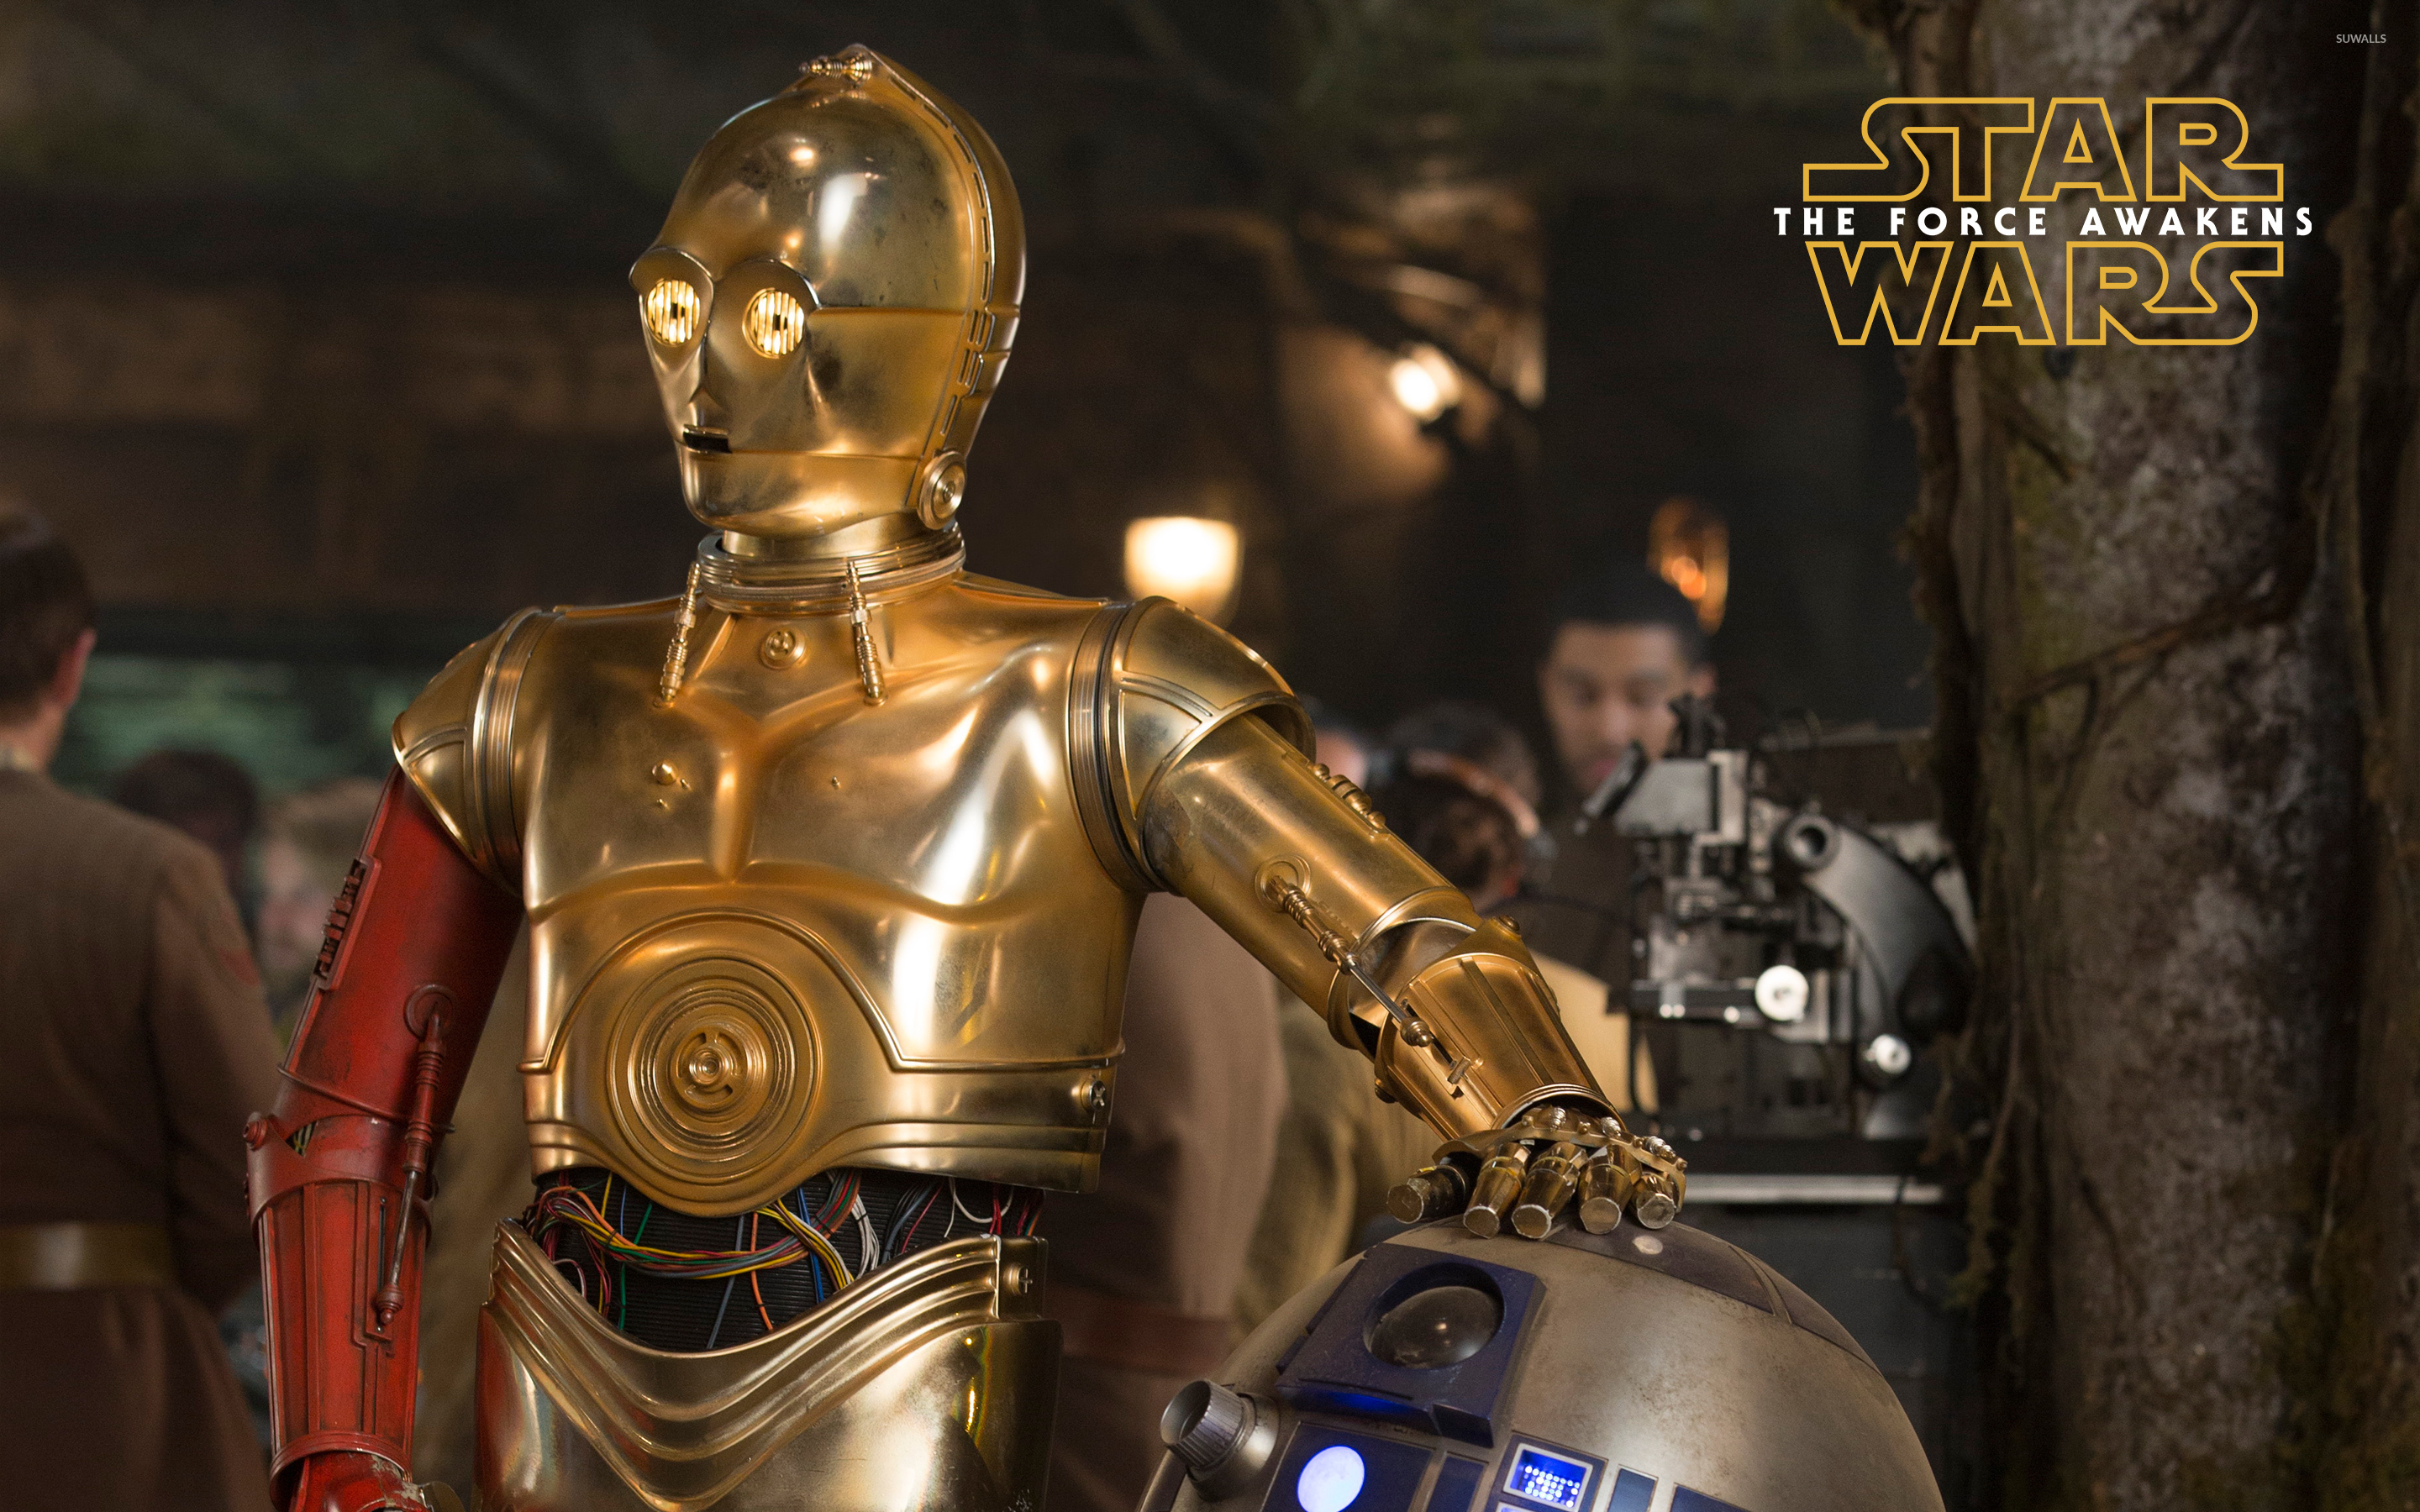 c 3po in star wars the force awakens wallpaper movie wallpapers 51506. Black Bedroom Furniture Sets. Home Design Ideas